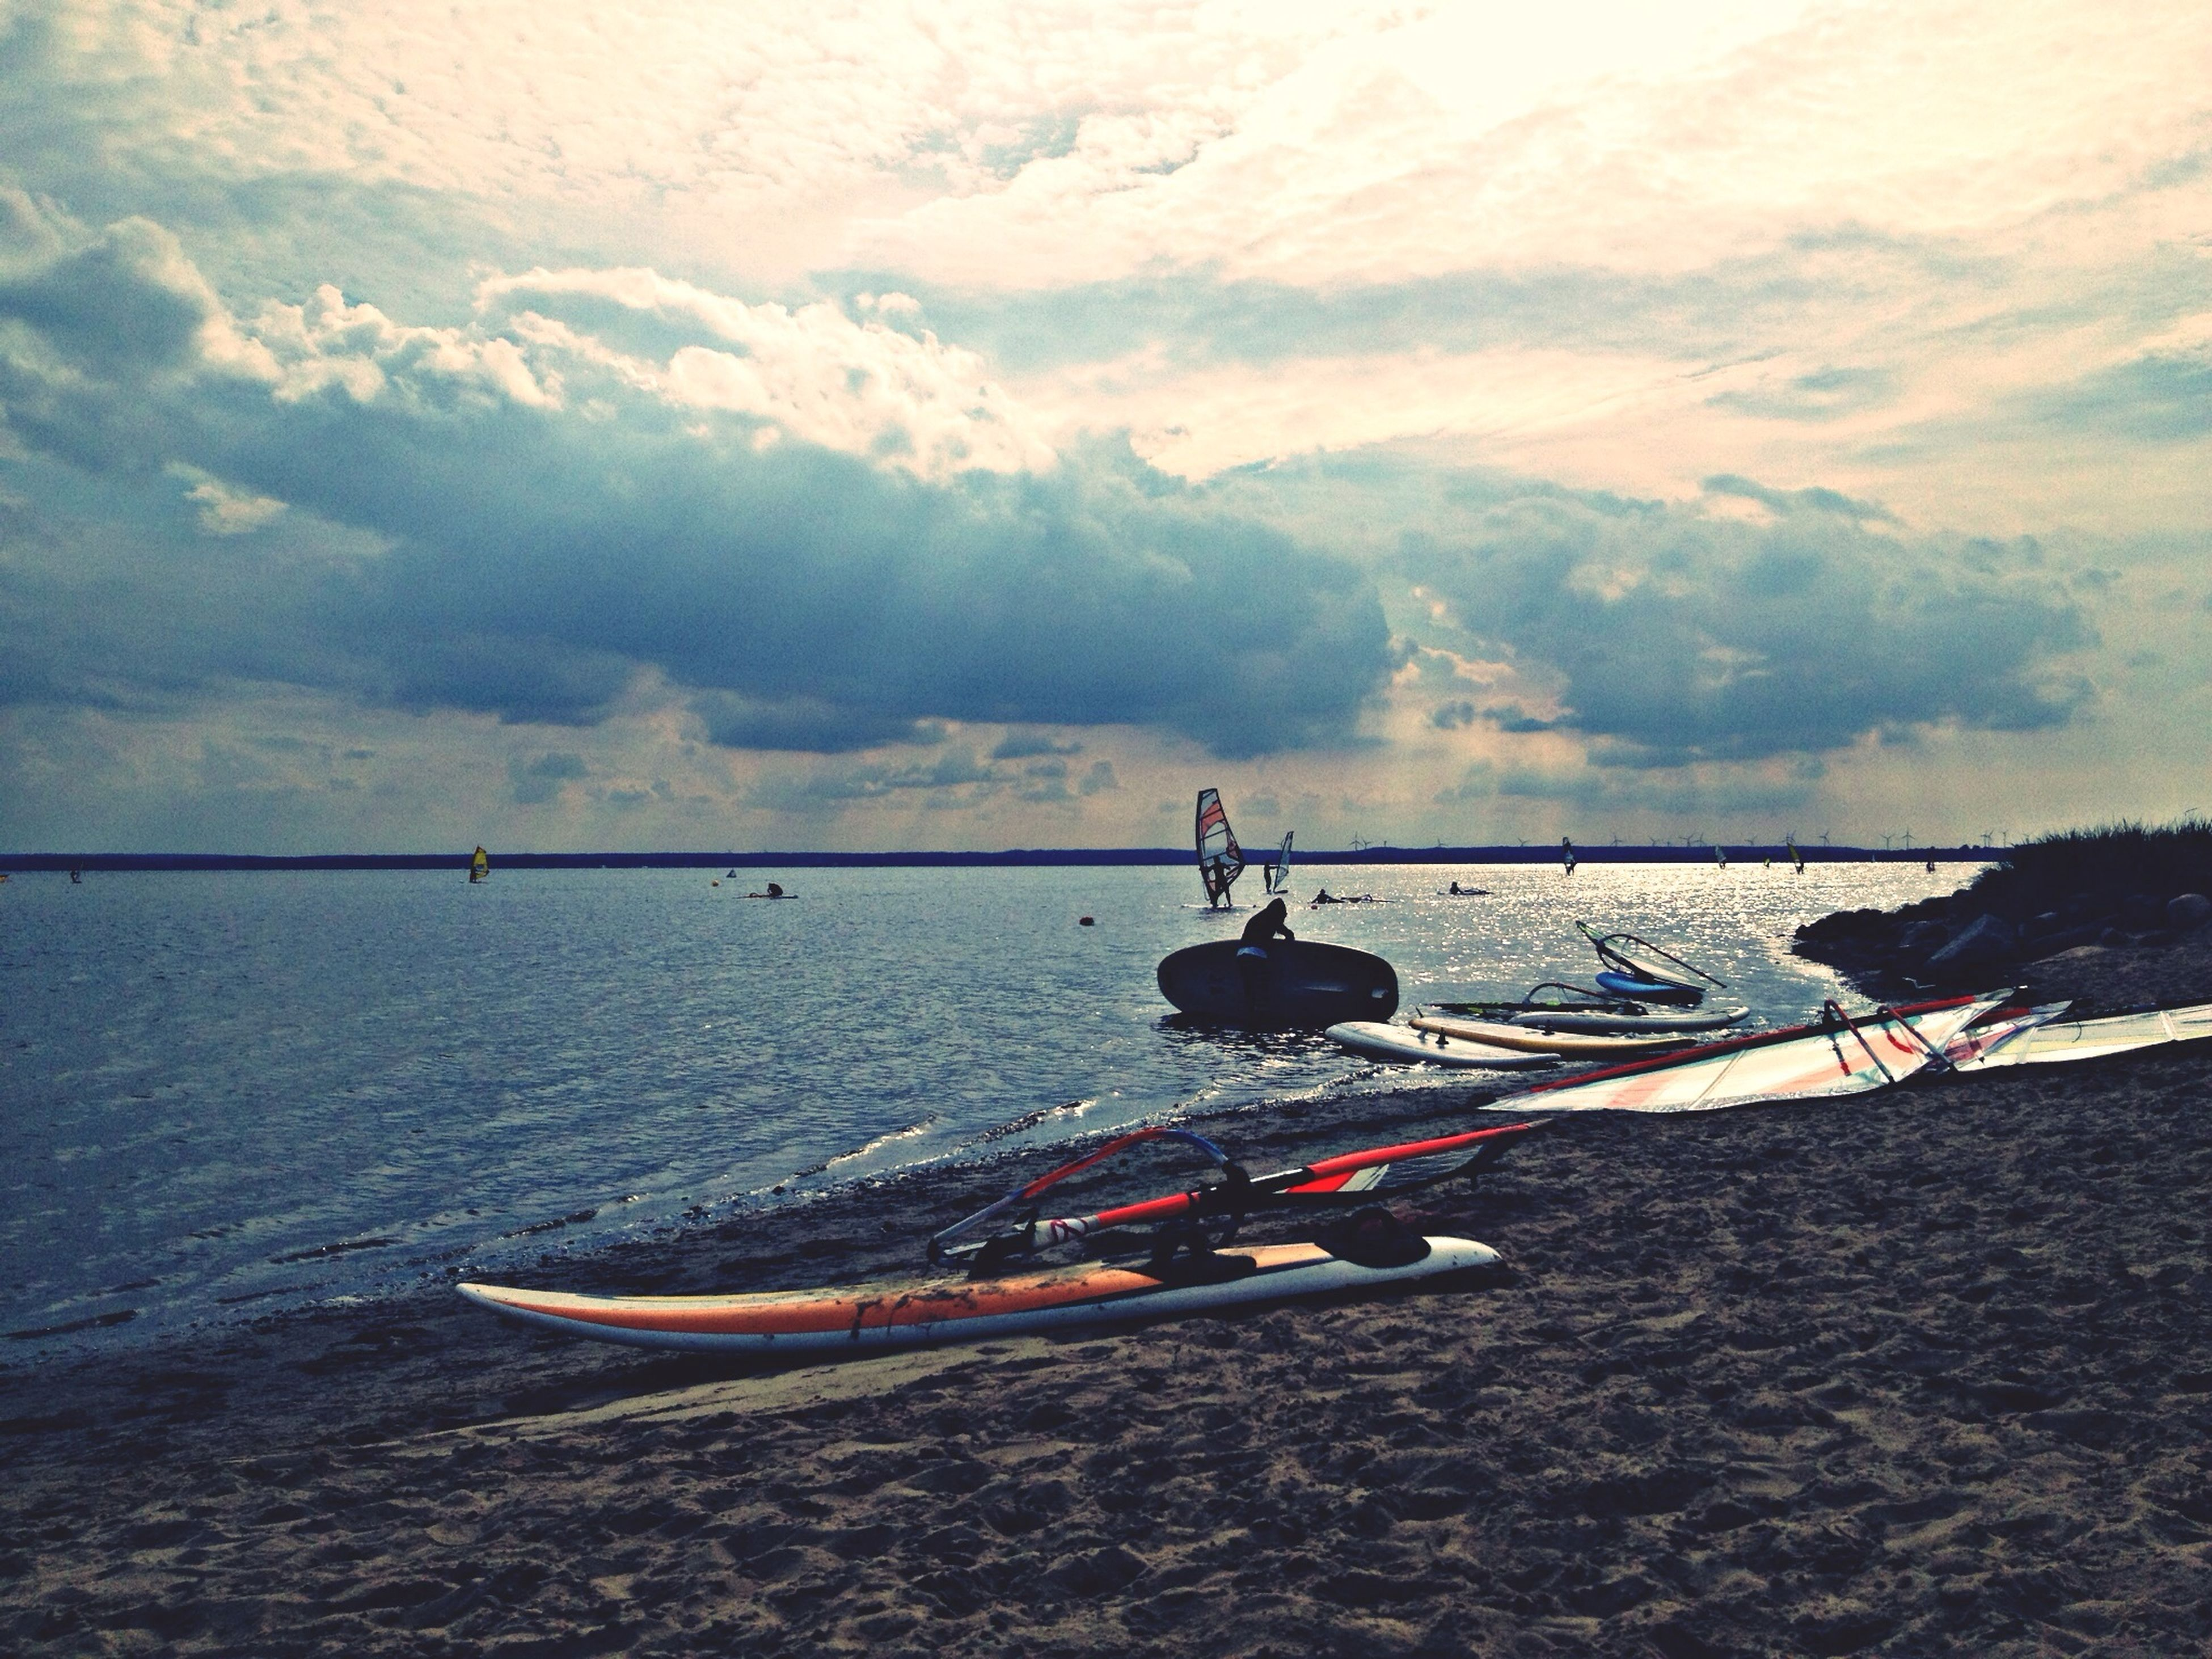 water, nautical vessel, transportation, boat, mode of transport, sea, sky, tranquil scene, tranquility, scenics, beauty in nature, moored, nature, cloud - sky, beach, shore, travel, mountain, cloud, sand